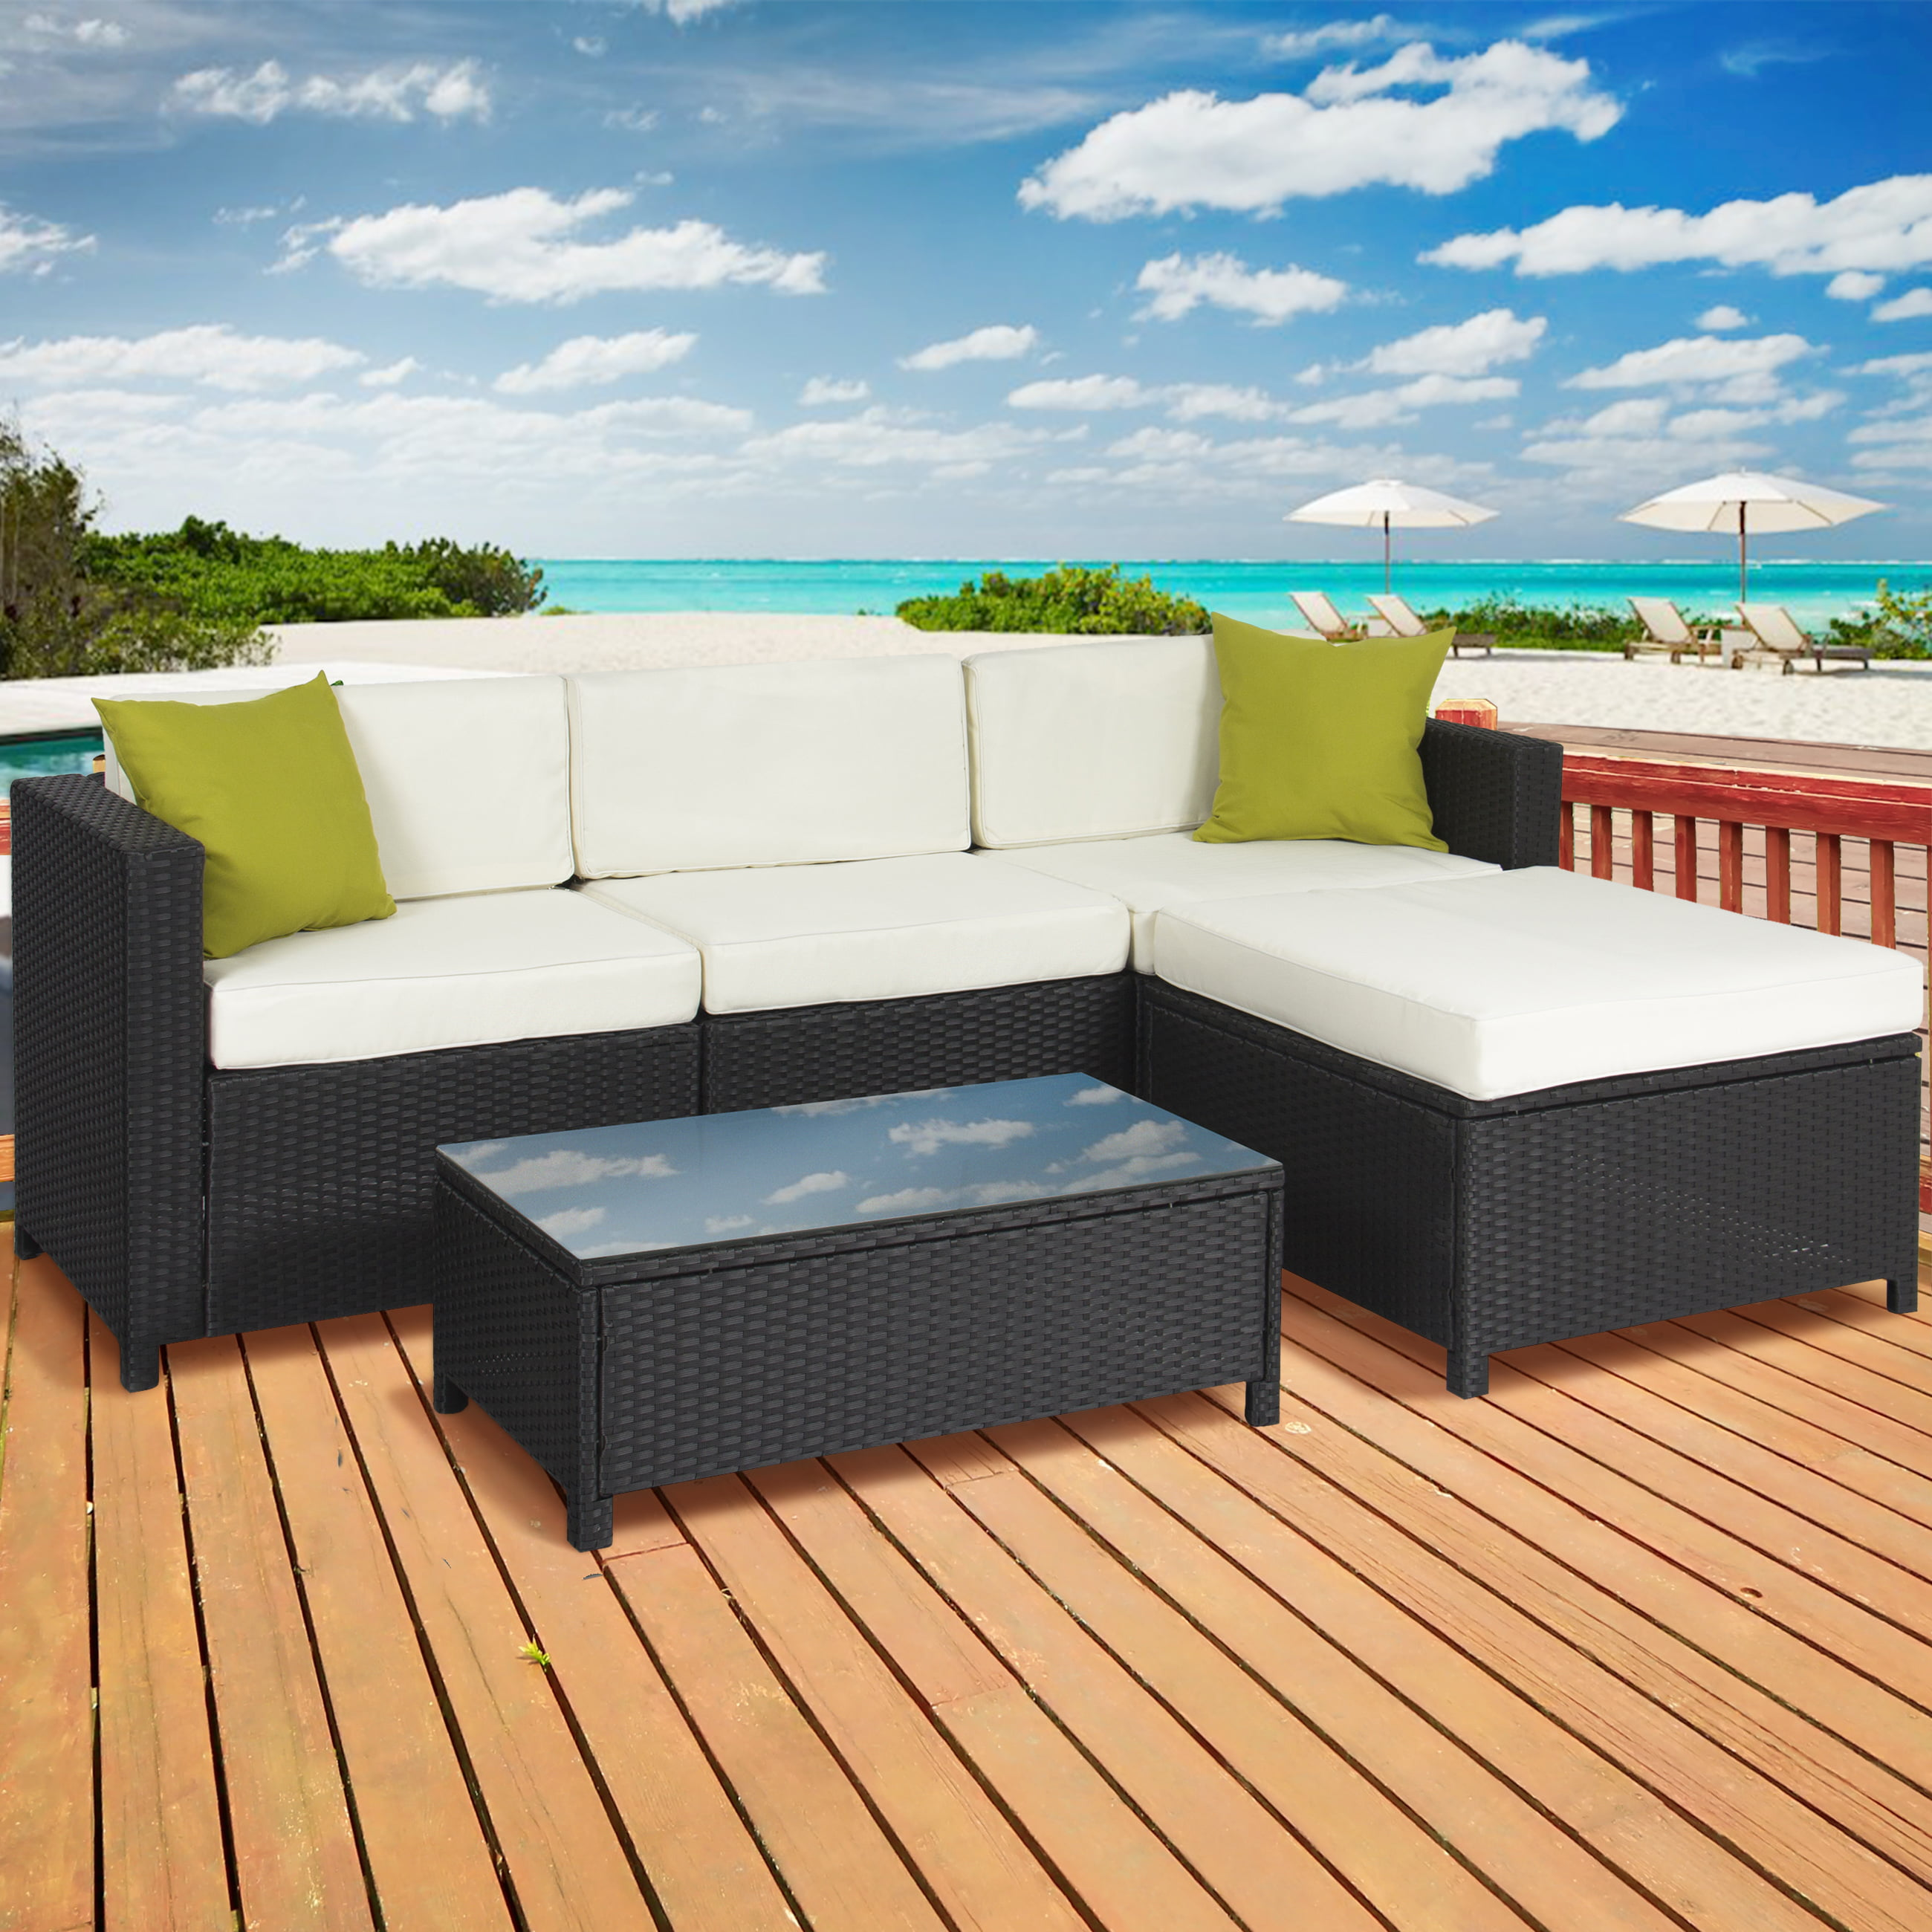 Best Choice Products 7 Piece Modular Outdoor Patio Furniture Set